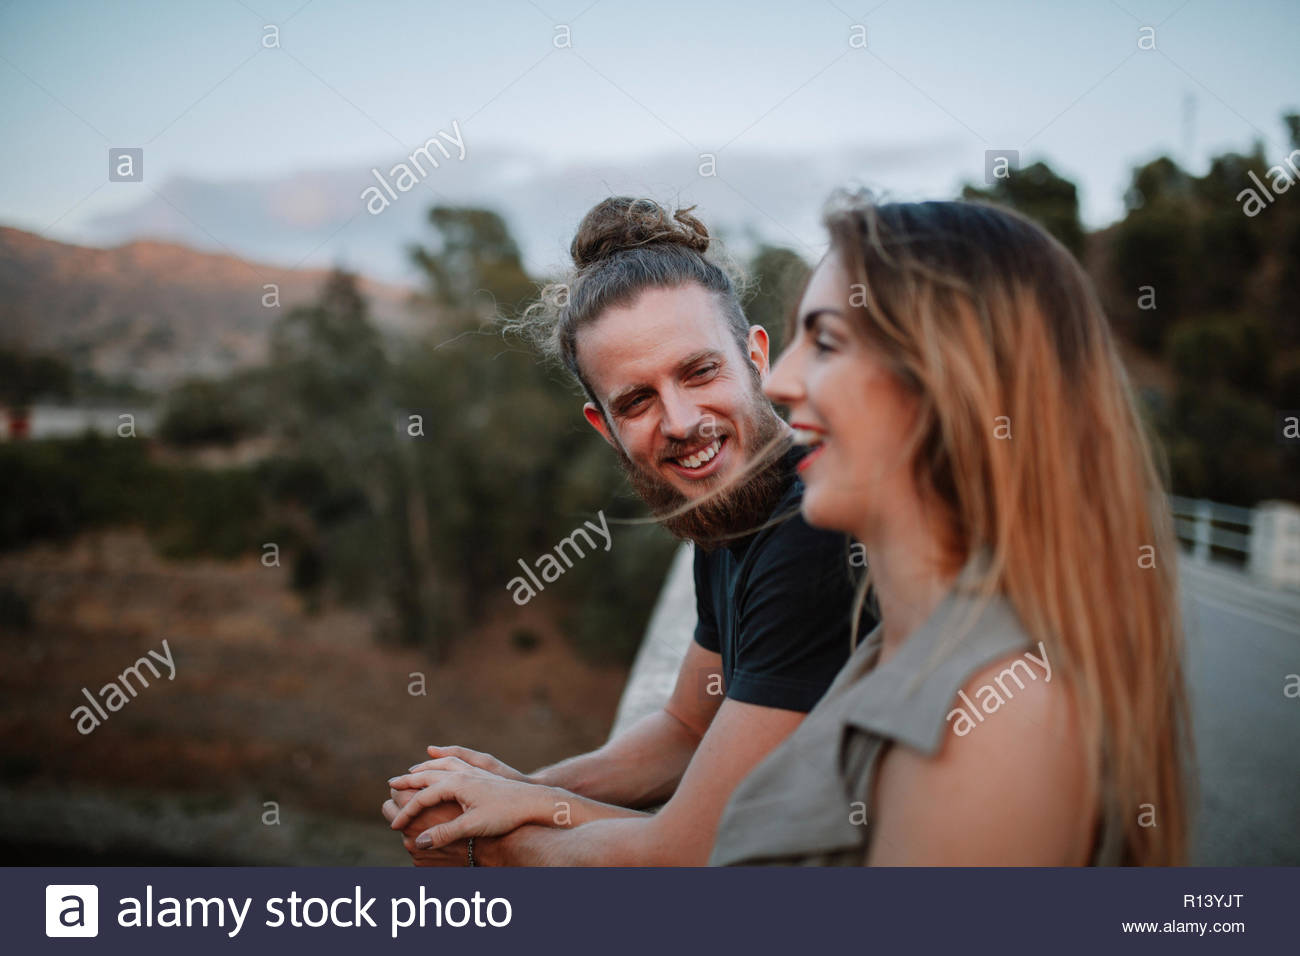 A happy young couple outdoors - Stock Image